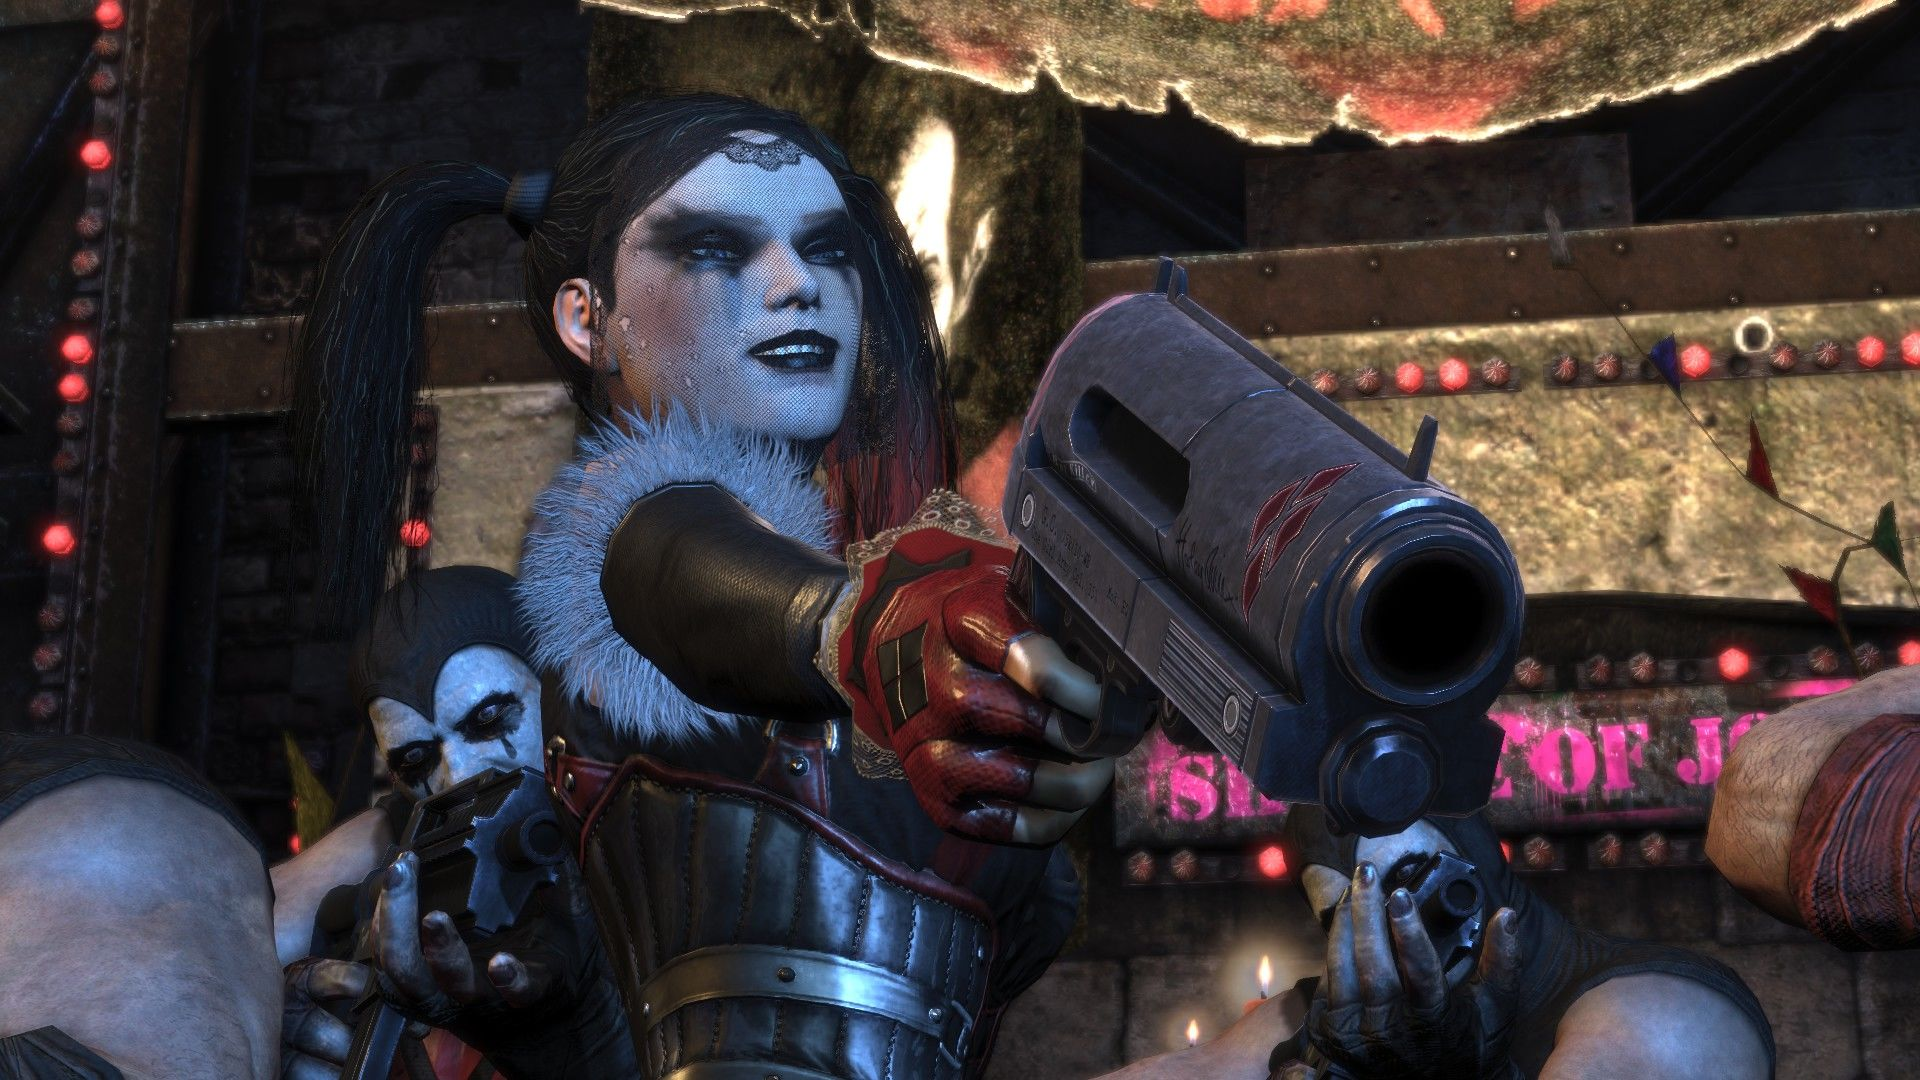 Batman: Arkham City - Harley Quinn's Revenge Windows Cut scenes are amazingly cinematic.